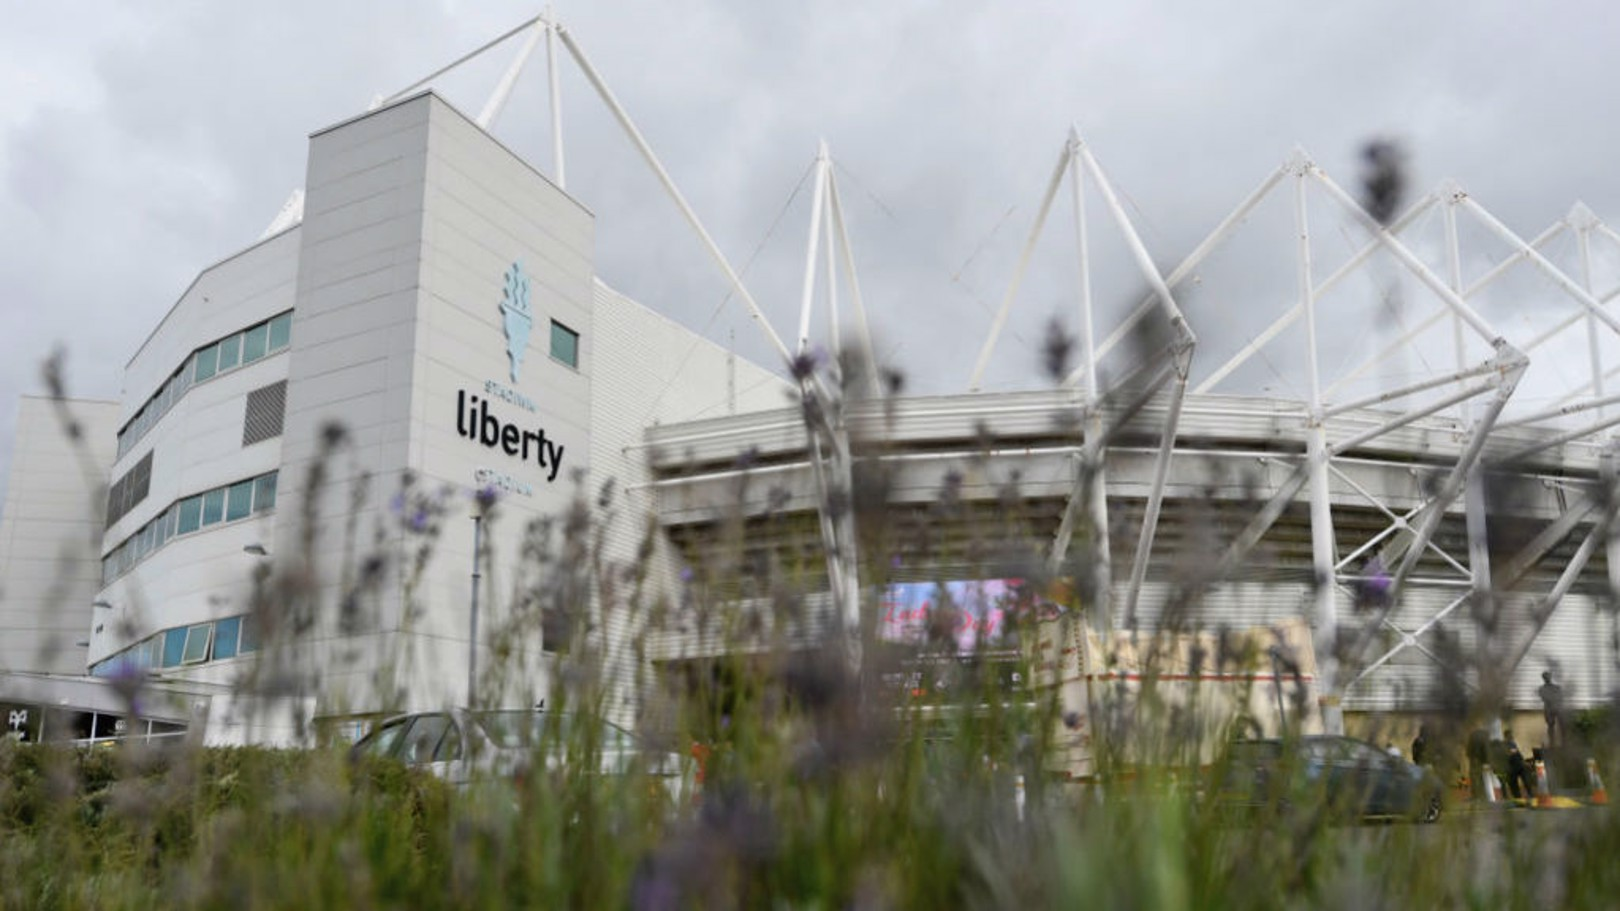 SOLD OUT: City's allocation for the FA Cup quarter-final at the Liberty Stadium is now sold out